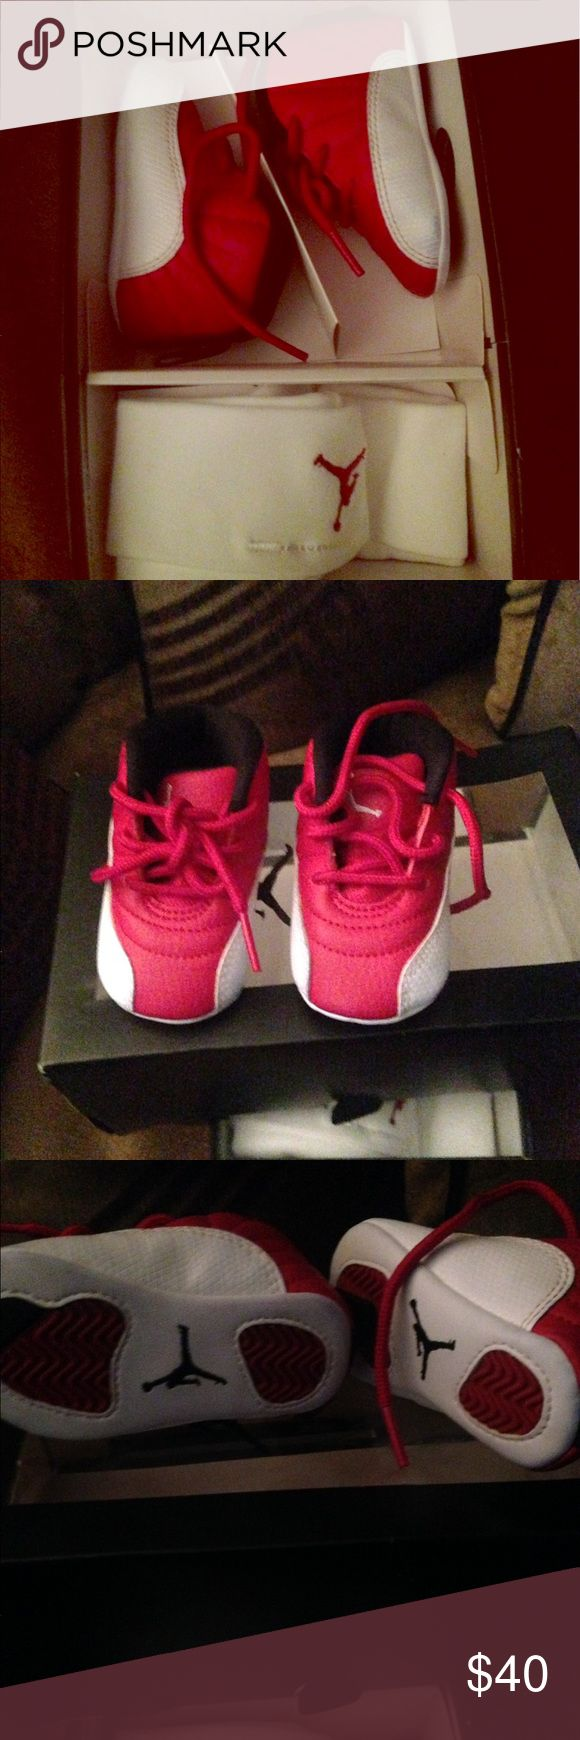 Infant Jordan Retro 12 Gift Pack Size 2C Beautiful Red and White unisex shoe that's perfect for a baby boy or girl. Compliments almost every outfit and are in excellent condition. Nike Shoes Sneakers